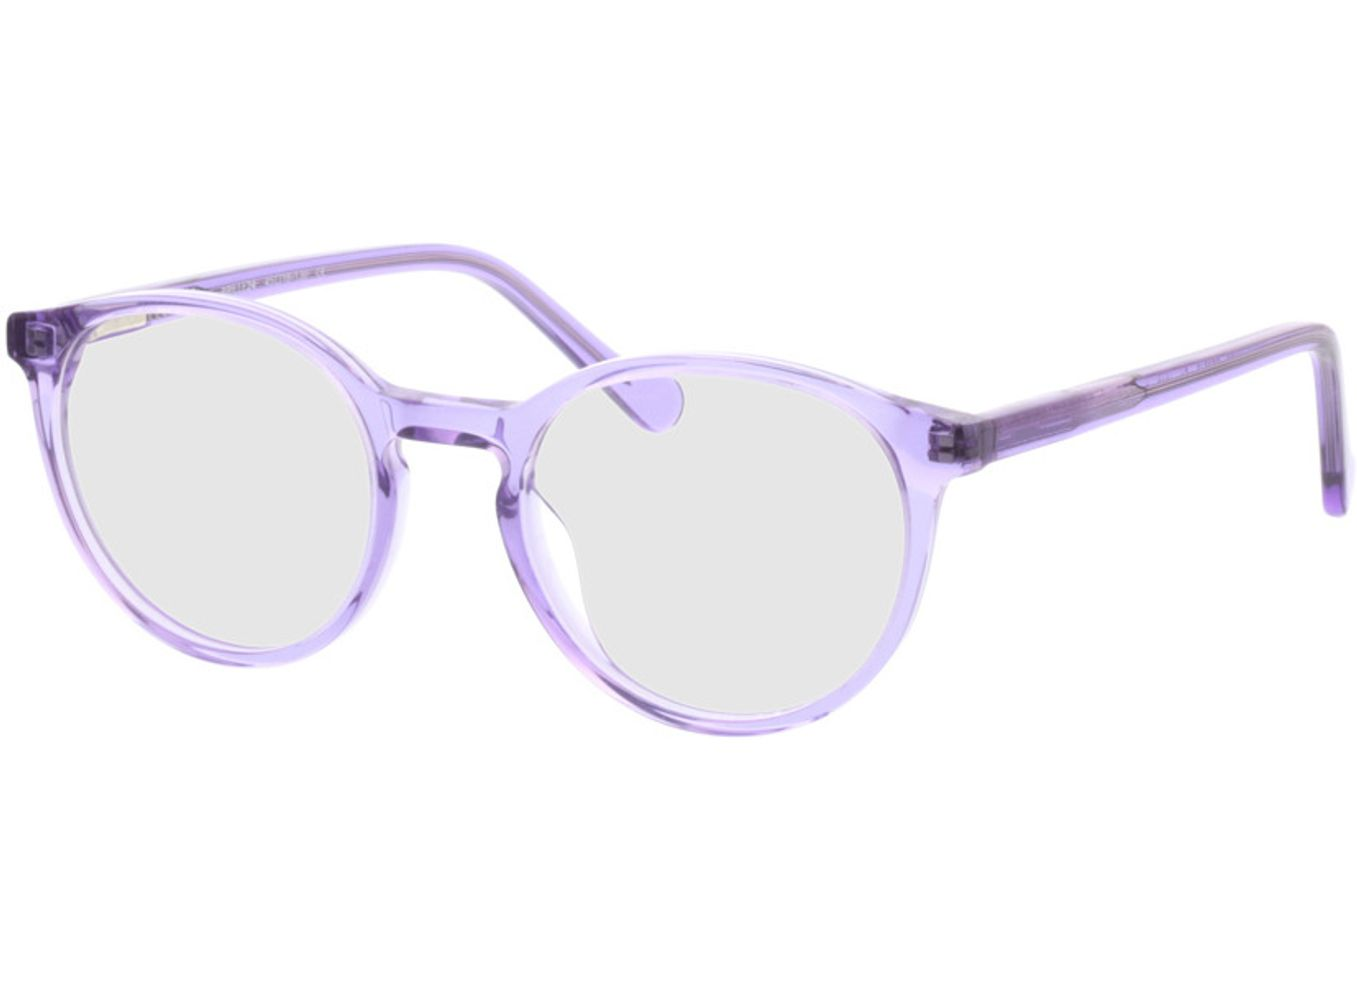 4967-singlevision-0000 Bursa-lila Gleitsichtbrille, Vollrand, Rund Brille24 Collection